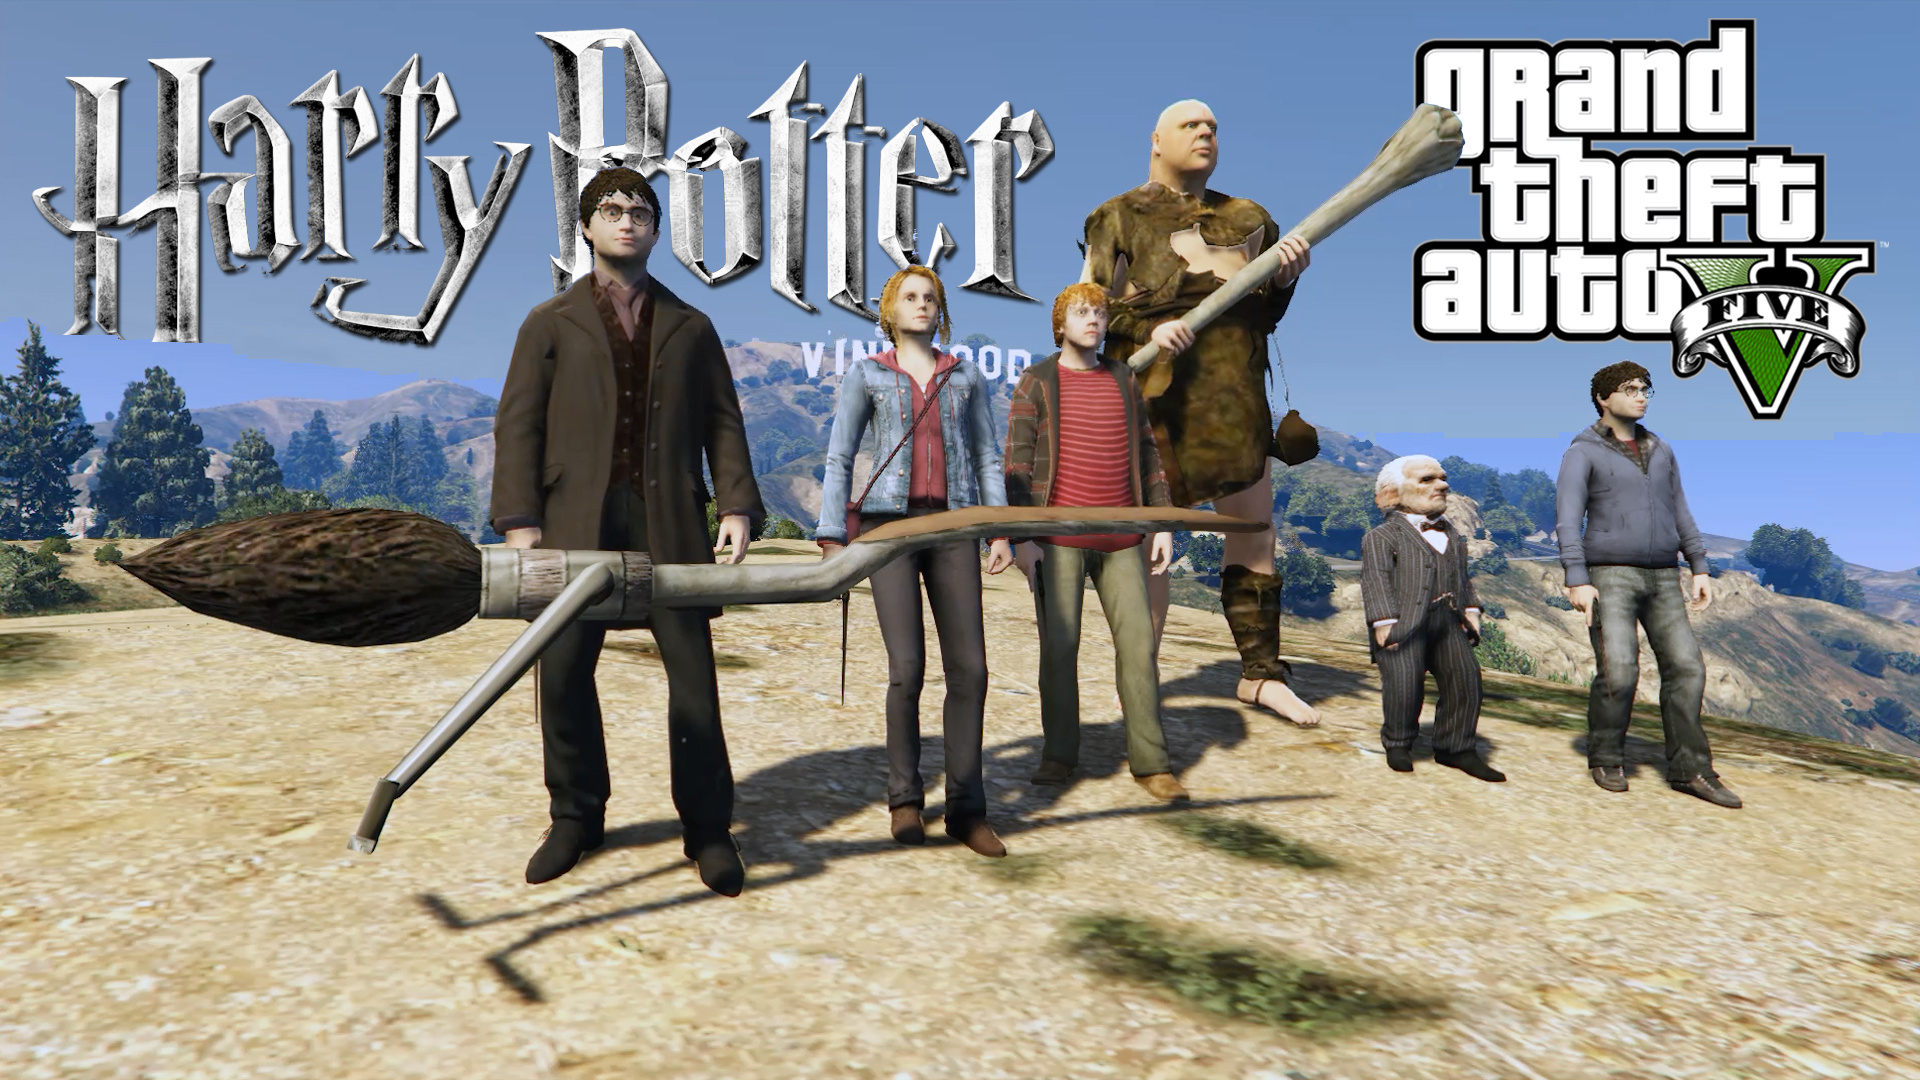 Harry Potter Character Package [Add-On Ped] - GTA5-Mods com